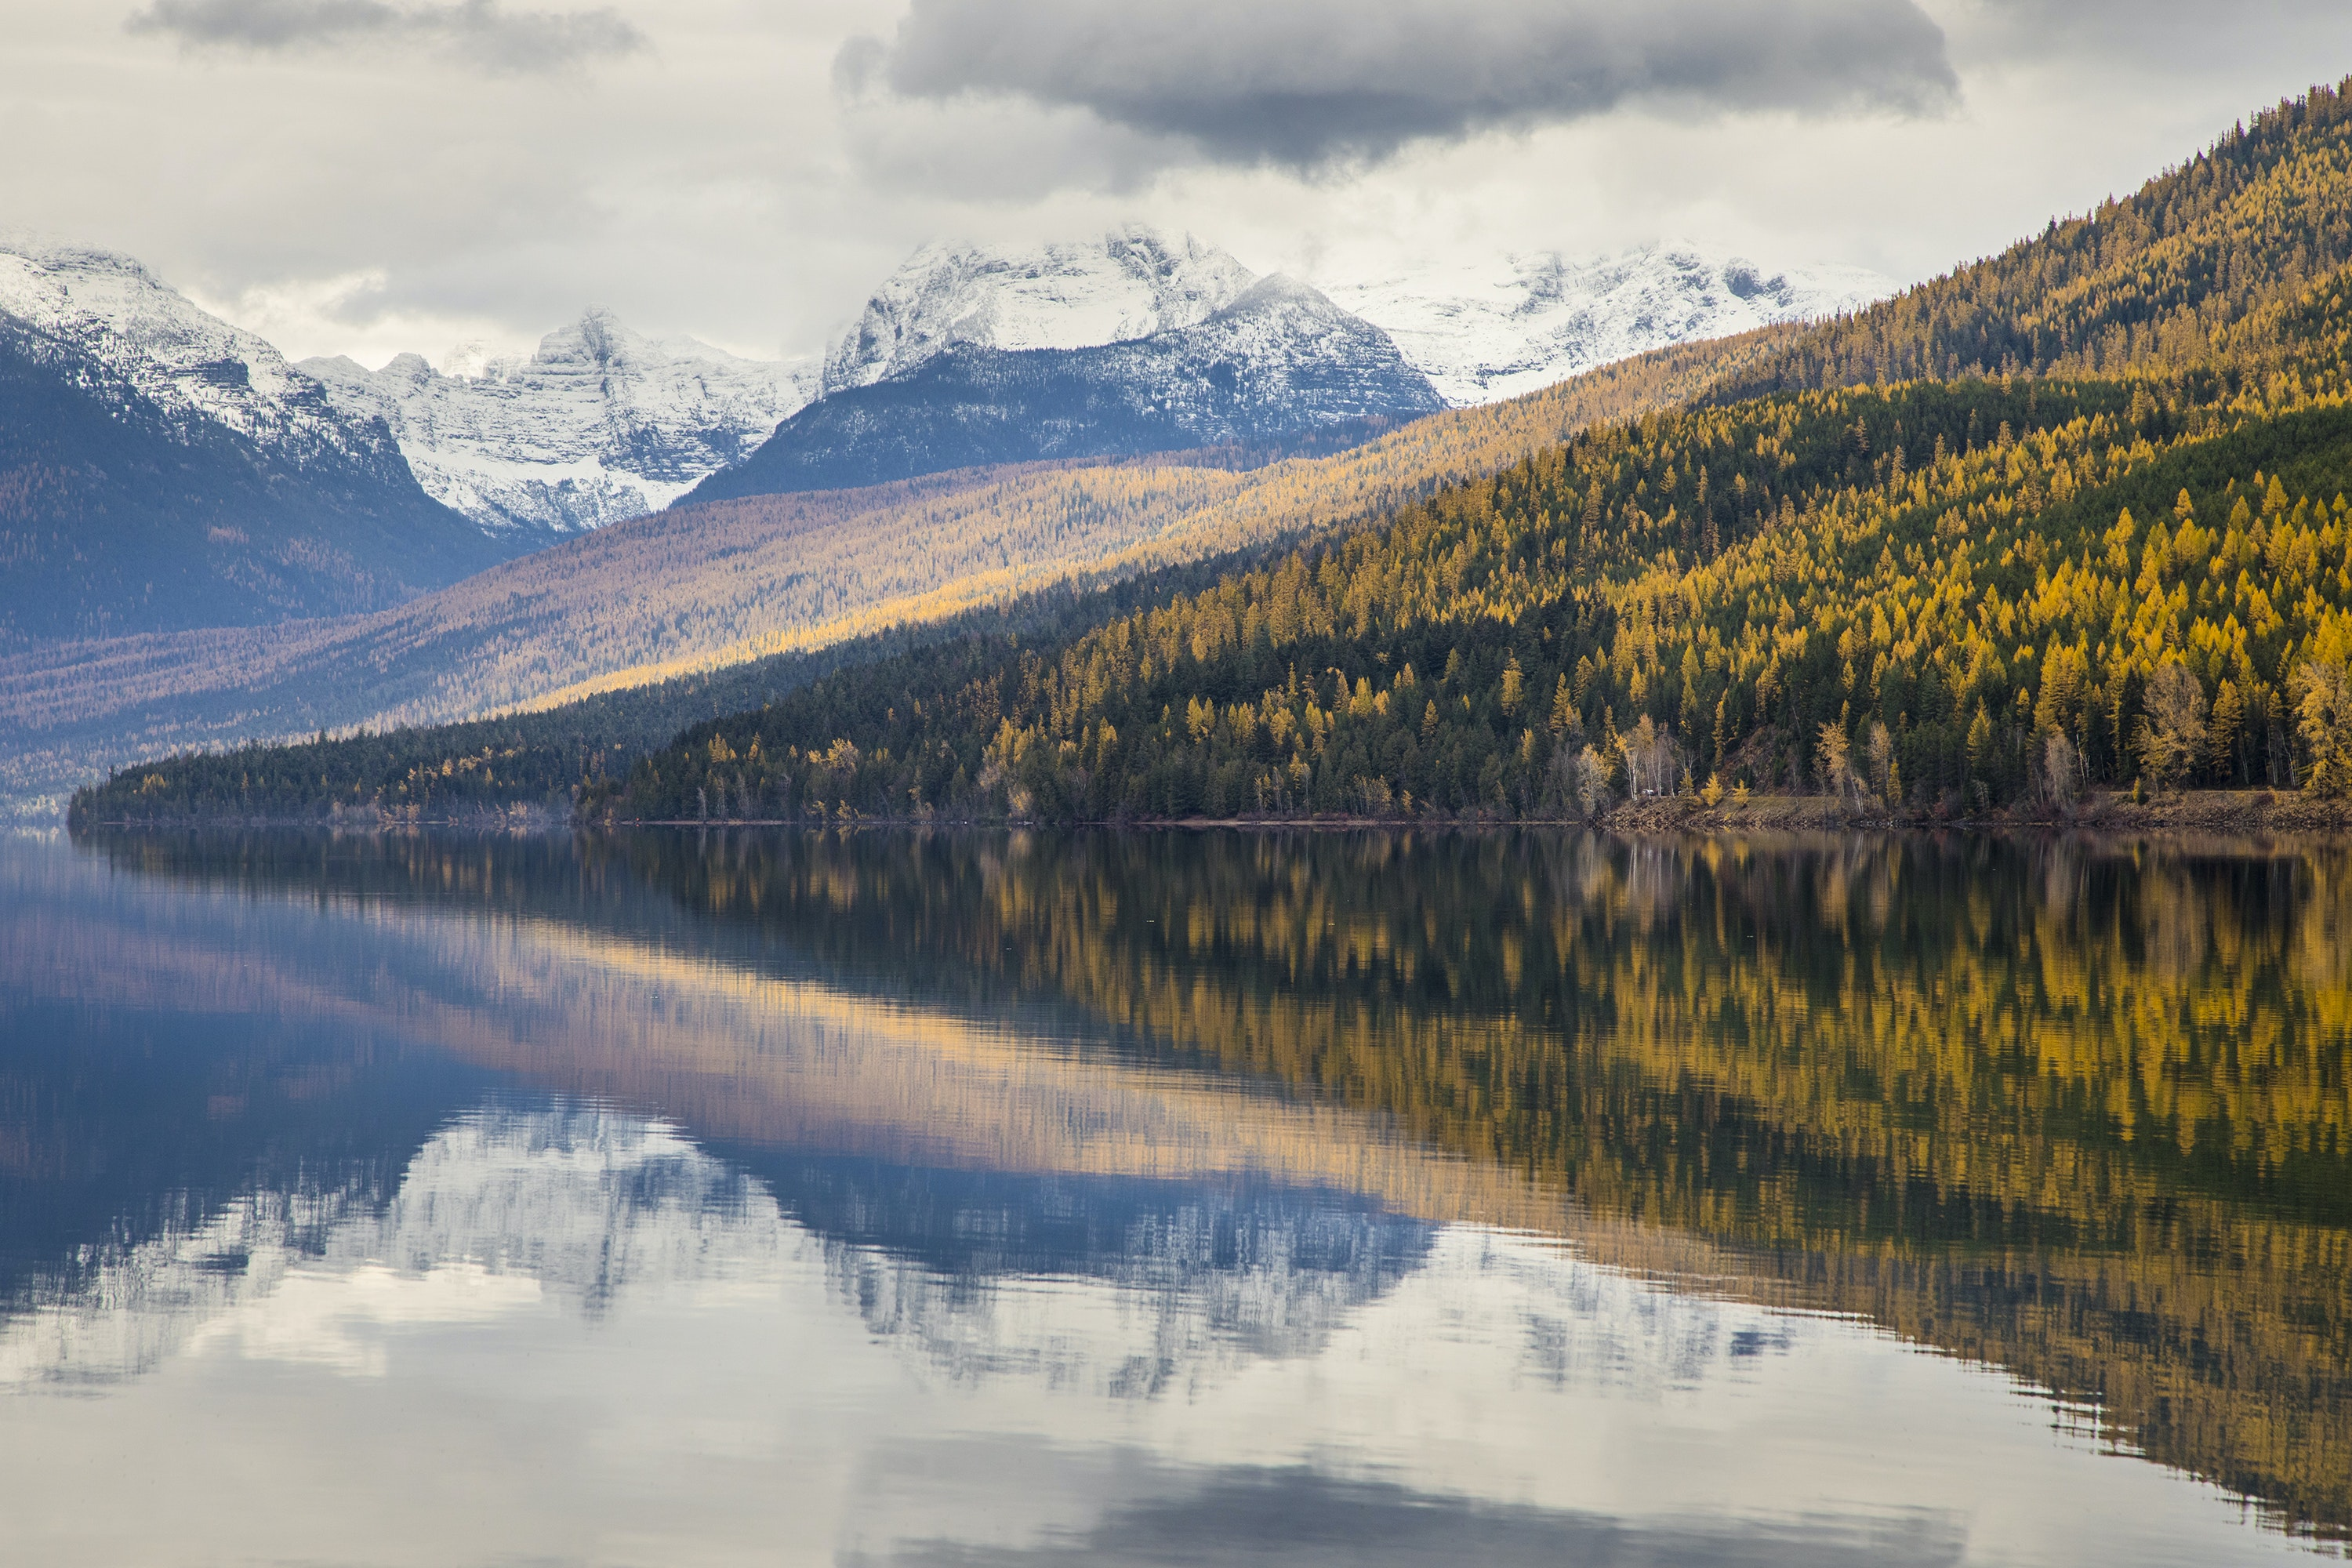 Glacier National Park is known for a particular deciduous pine that turns bright yellow in the fall.